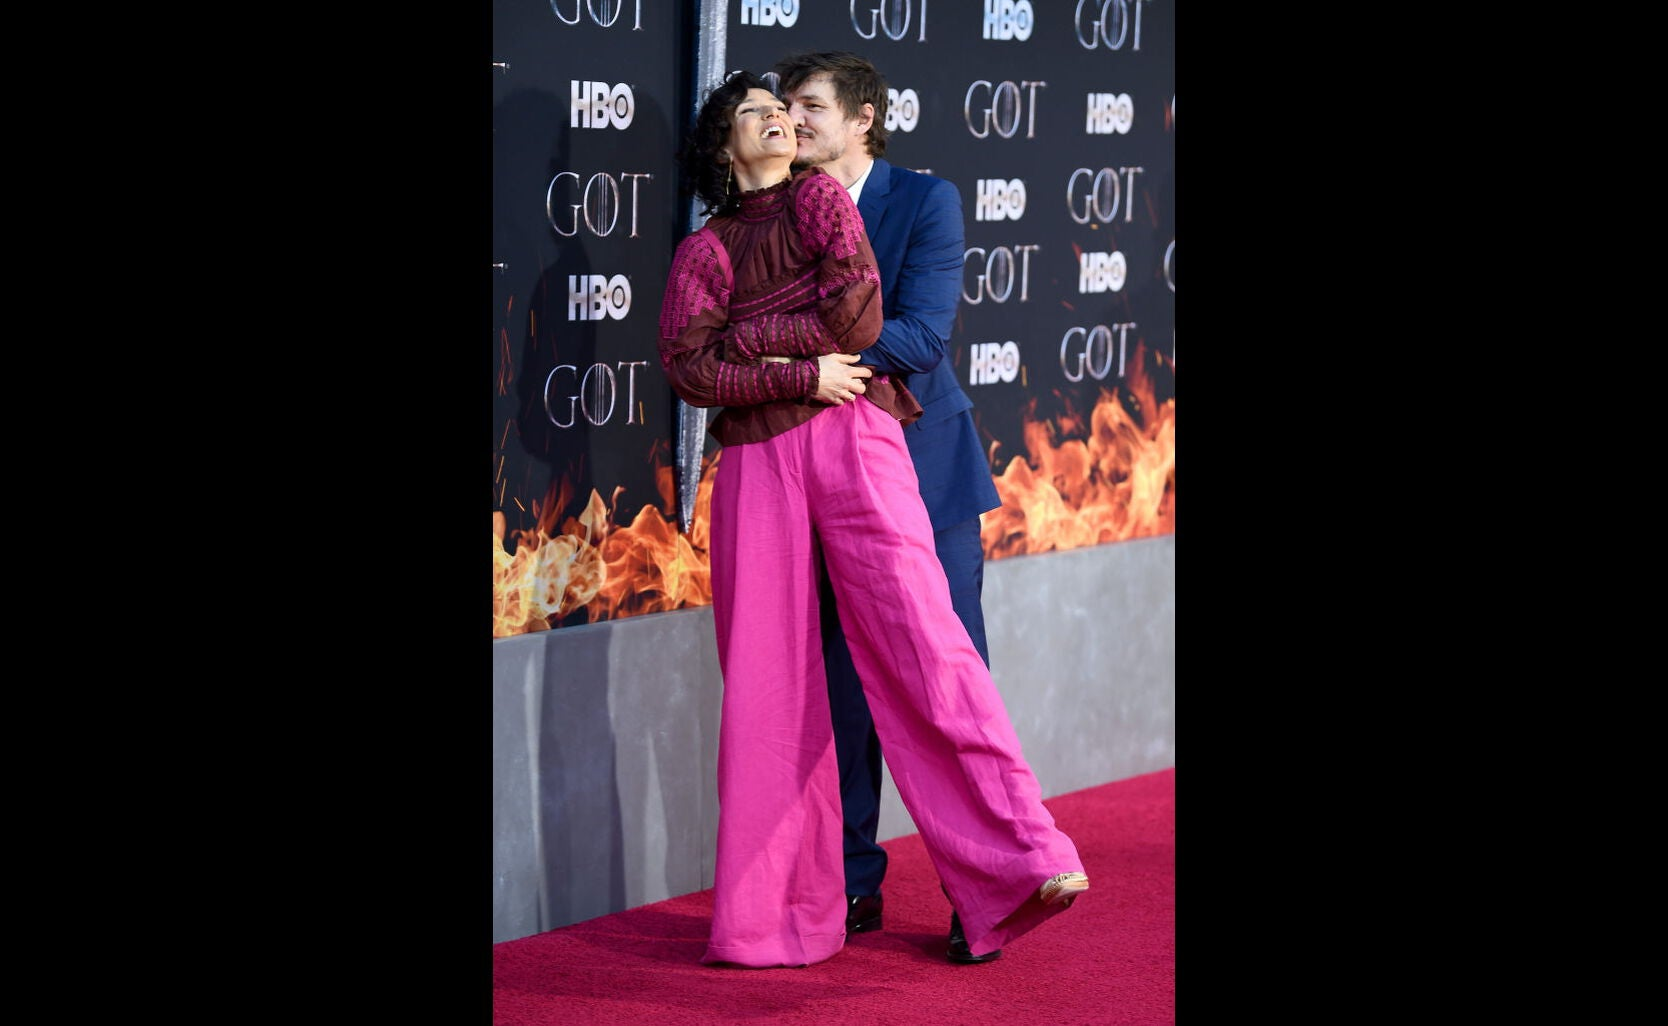 Pedro Pascal and Indira Varma at the premiere of s8 of Game of Thrones